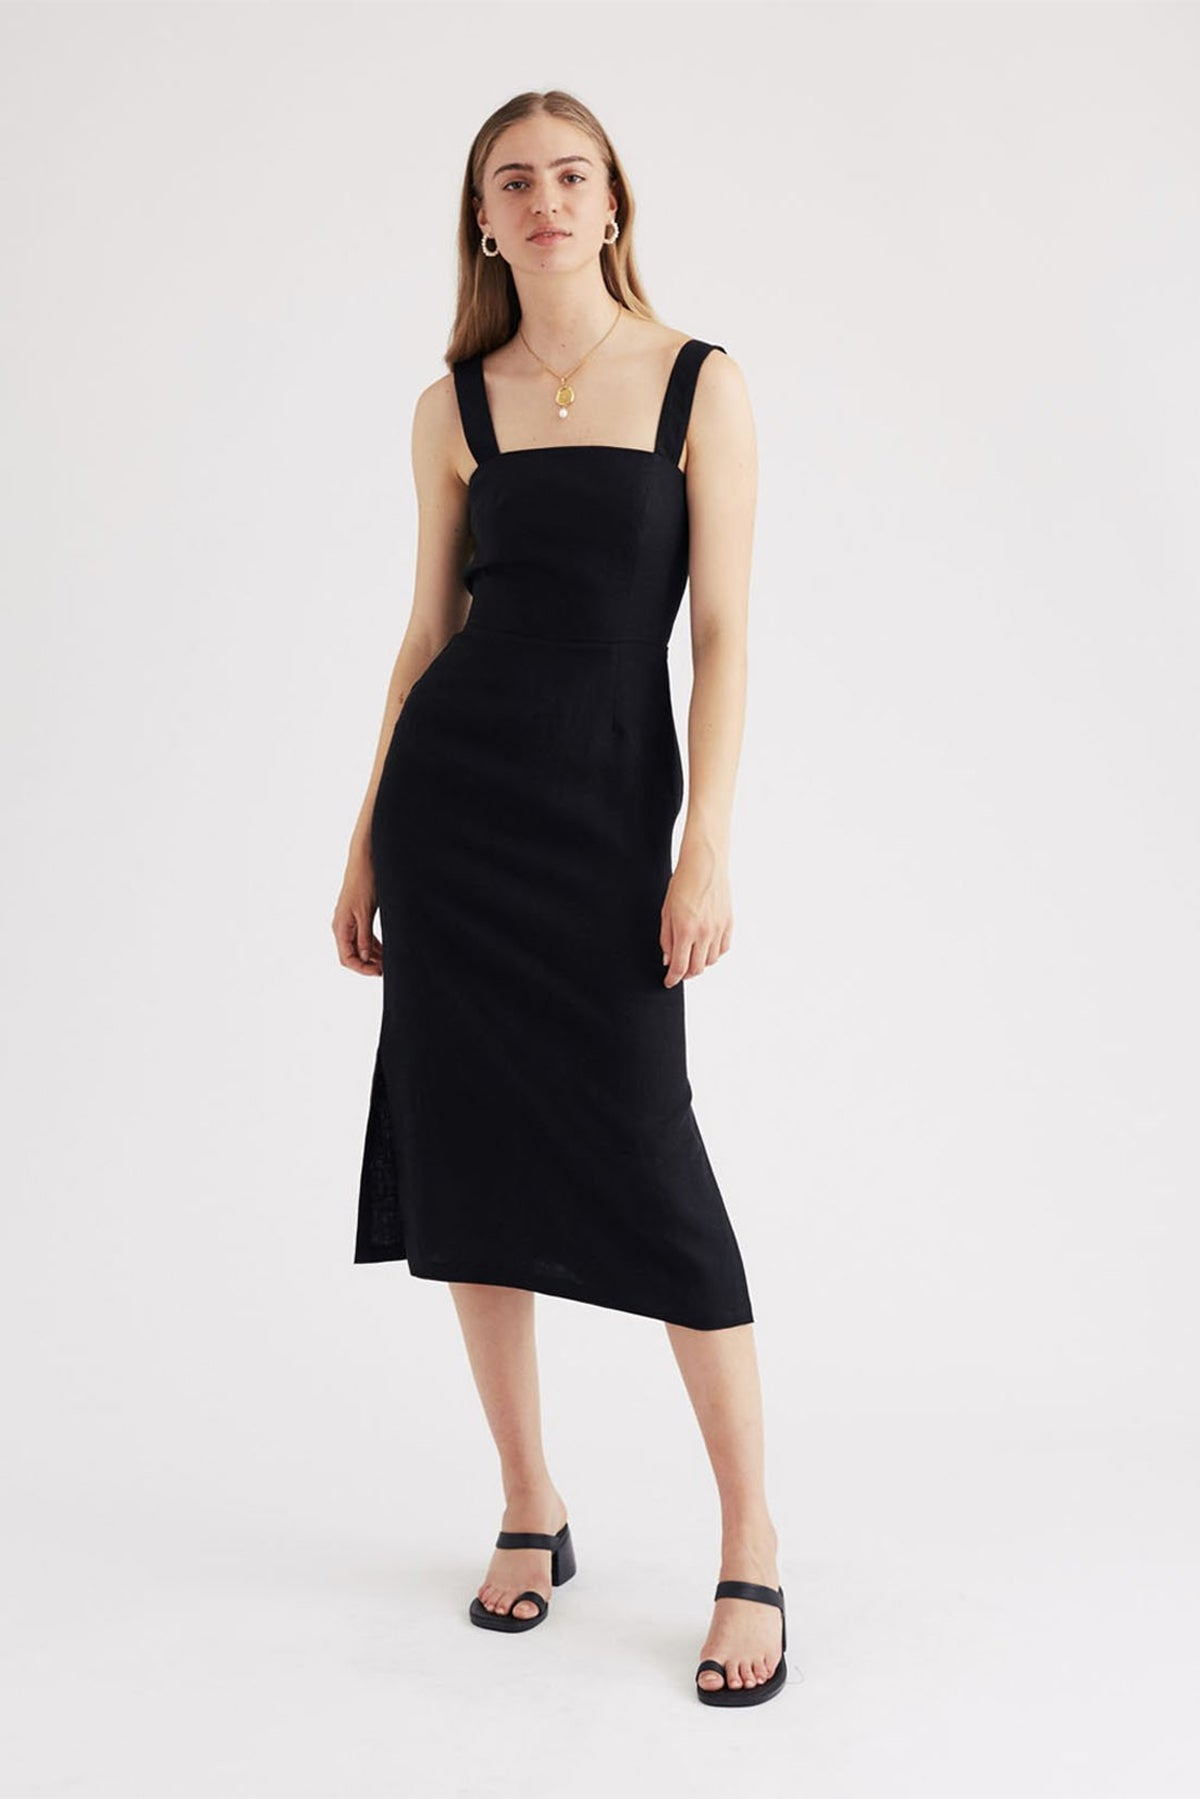 Jillian Boustred Valerie Dress // Black